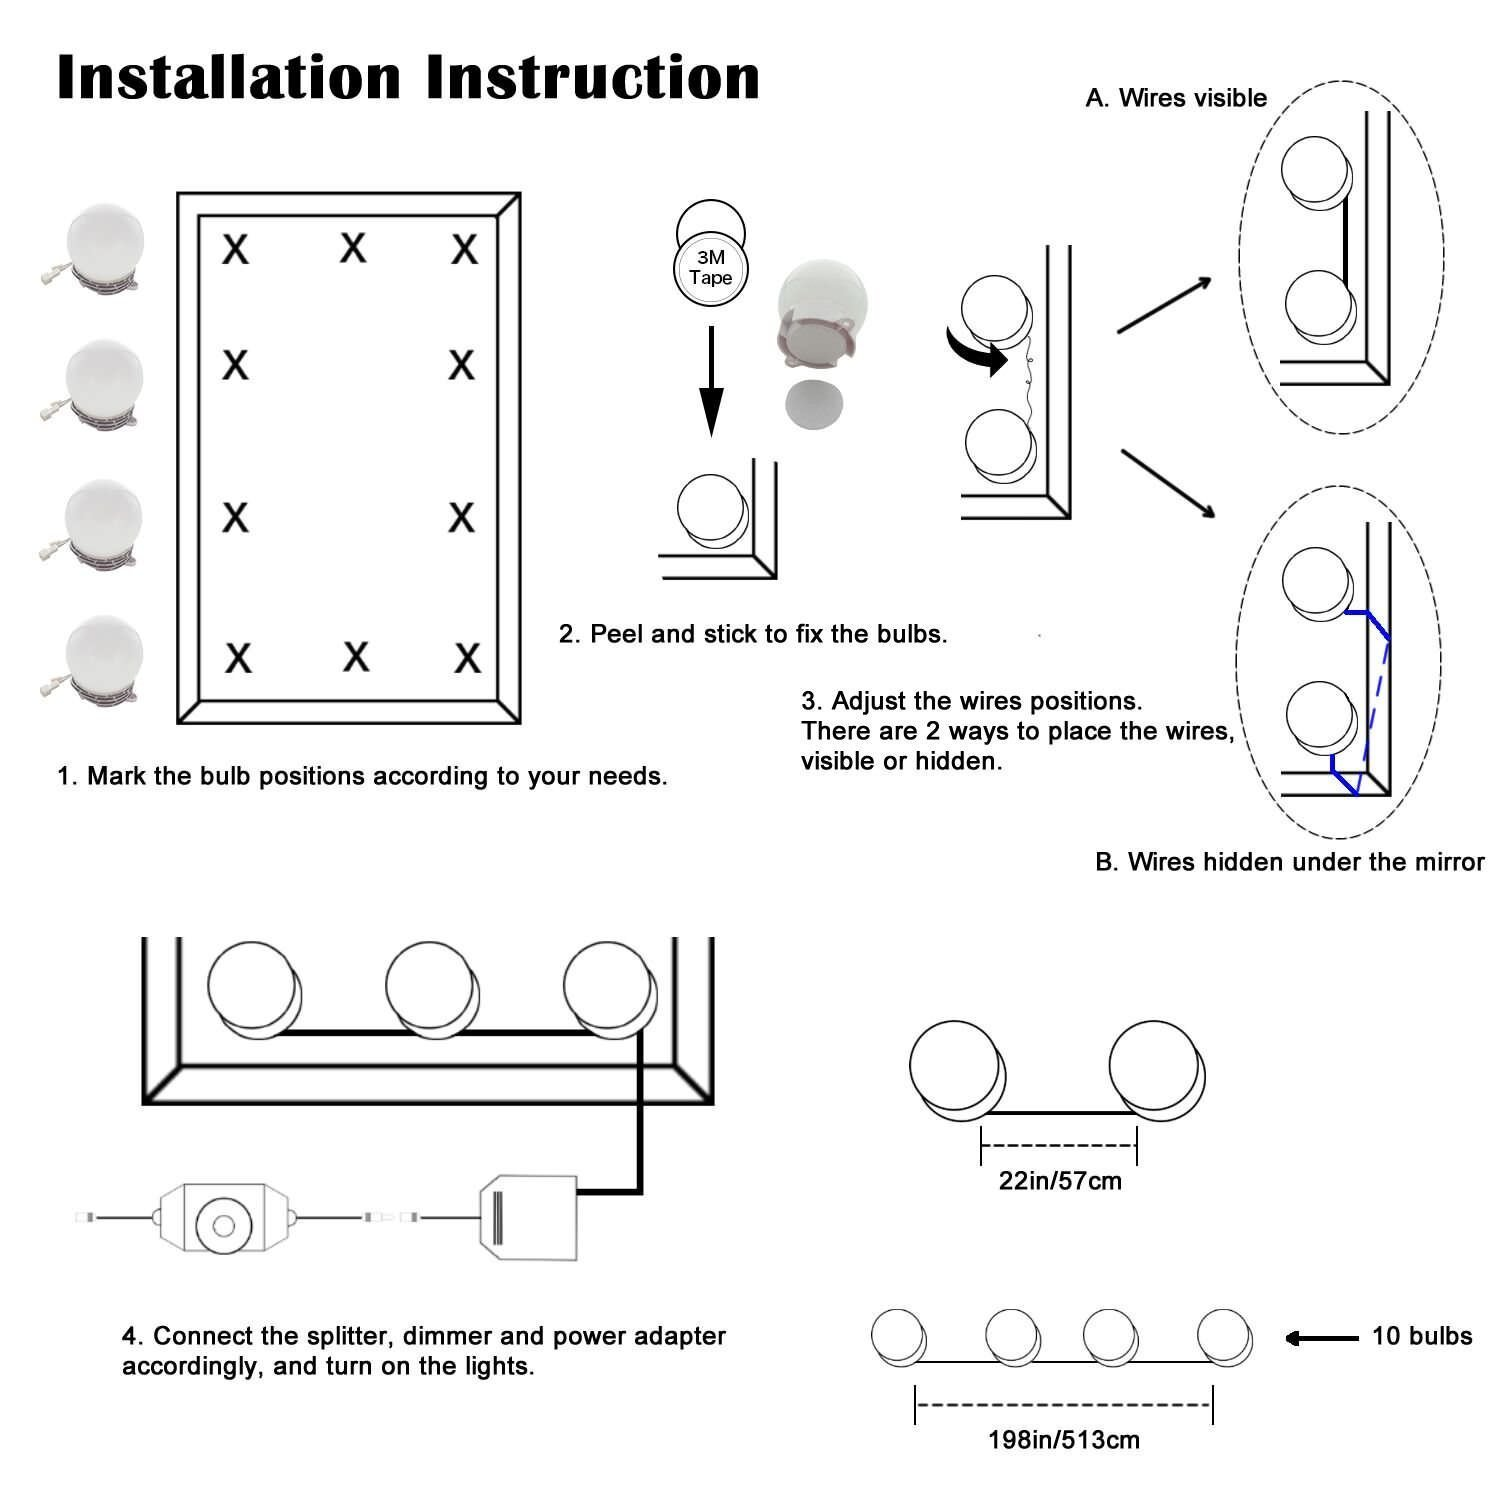 Mazda 3 Wiring Harness Diagram also Wiring Diagram For Ceiling Light With Switch moreover Wire Diagram For Makeup Mirror likewise Book Of Bathroom Lighting Circuit In Australia By Emma besides Wiring Diagrams For Ceiling Fans To A Switch. on bath fan switch wiring